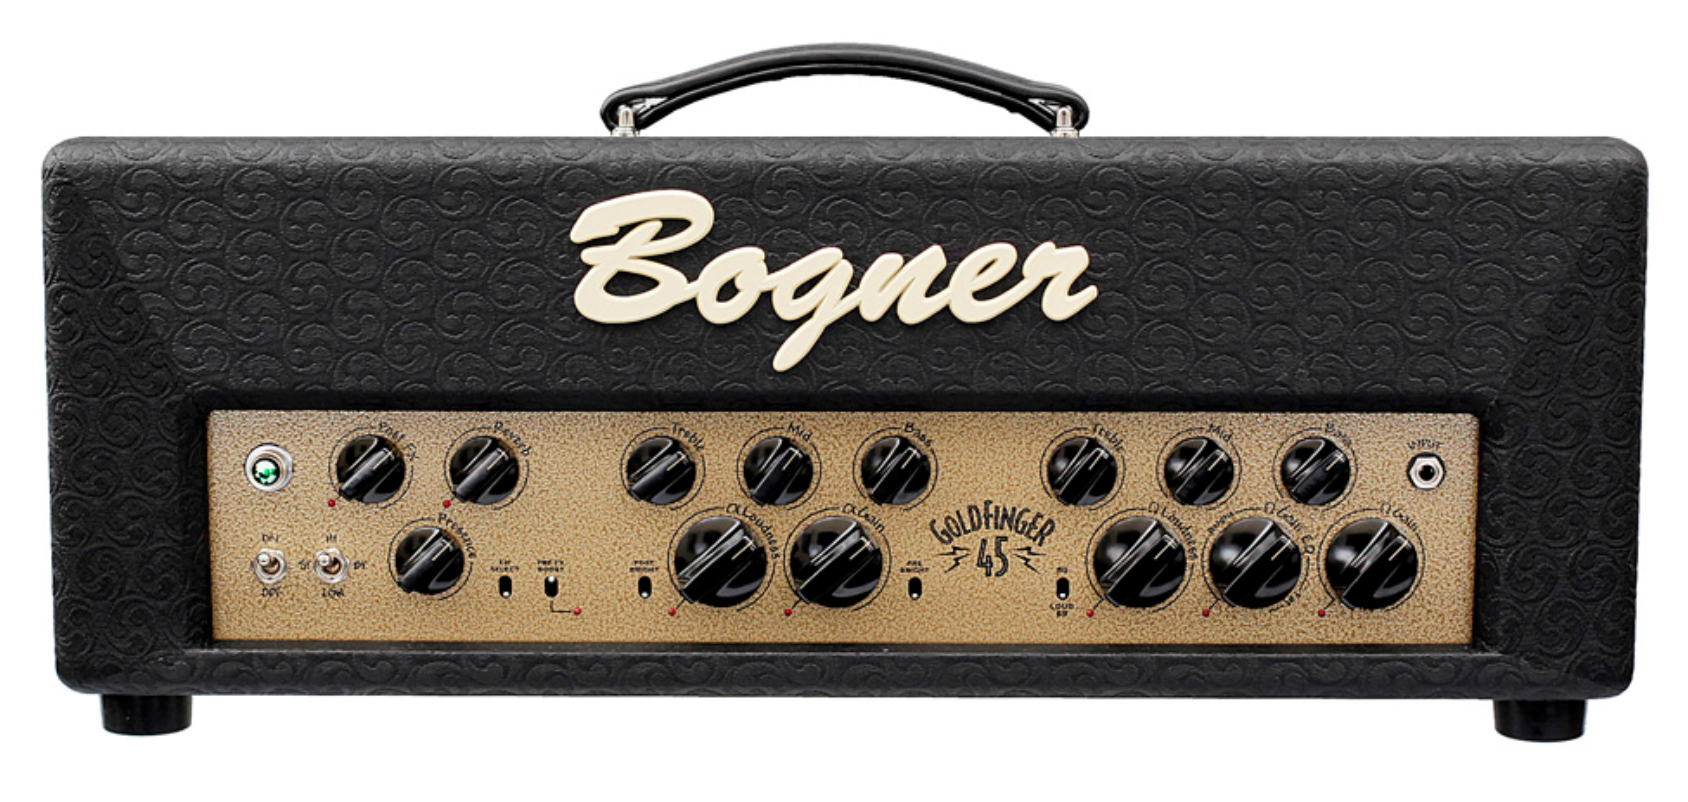 Bogner Goldfinger   The Goldfinger is based around the rich harmonic textures of the iconic 6V6 tube. Known for having a nice warmth and a creamy breakup at fairly low volumes, the 6V6 sings like an EL34 but has more chime for cleaner bell like tones.